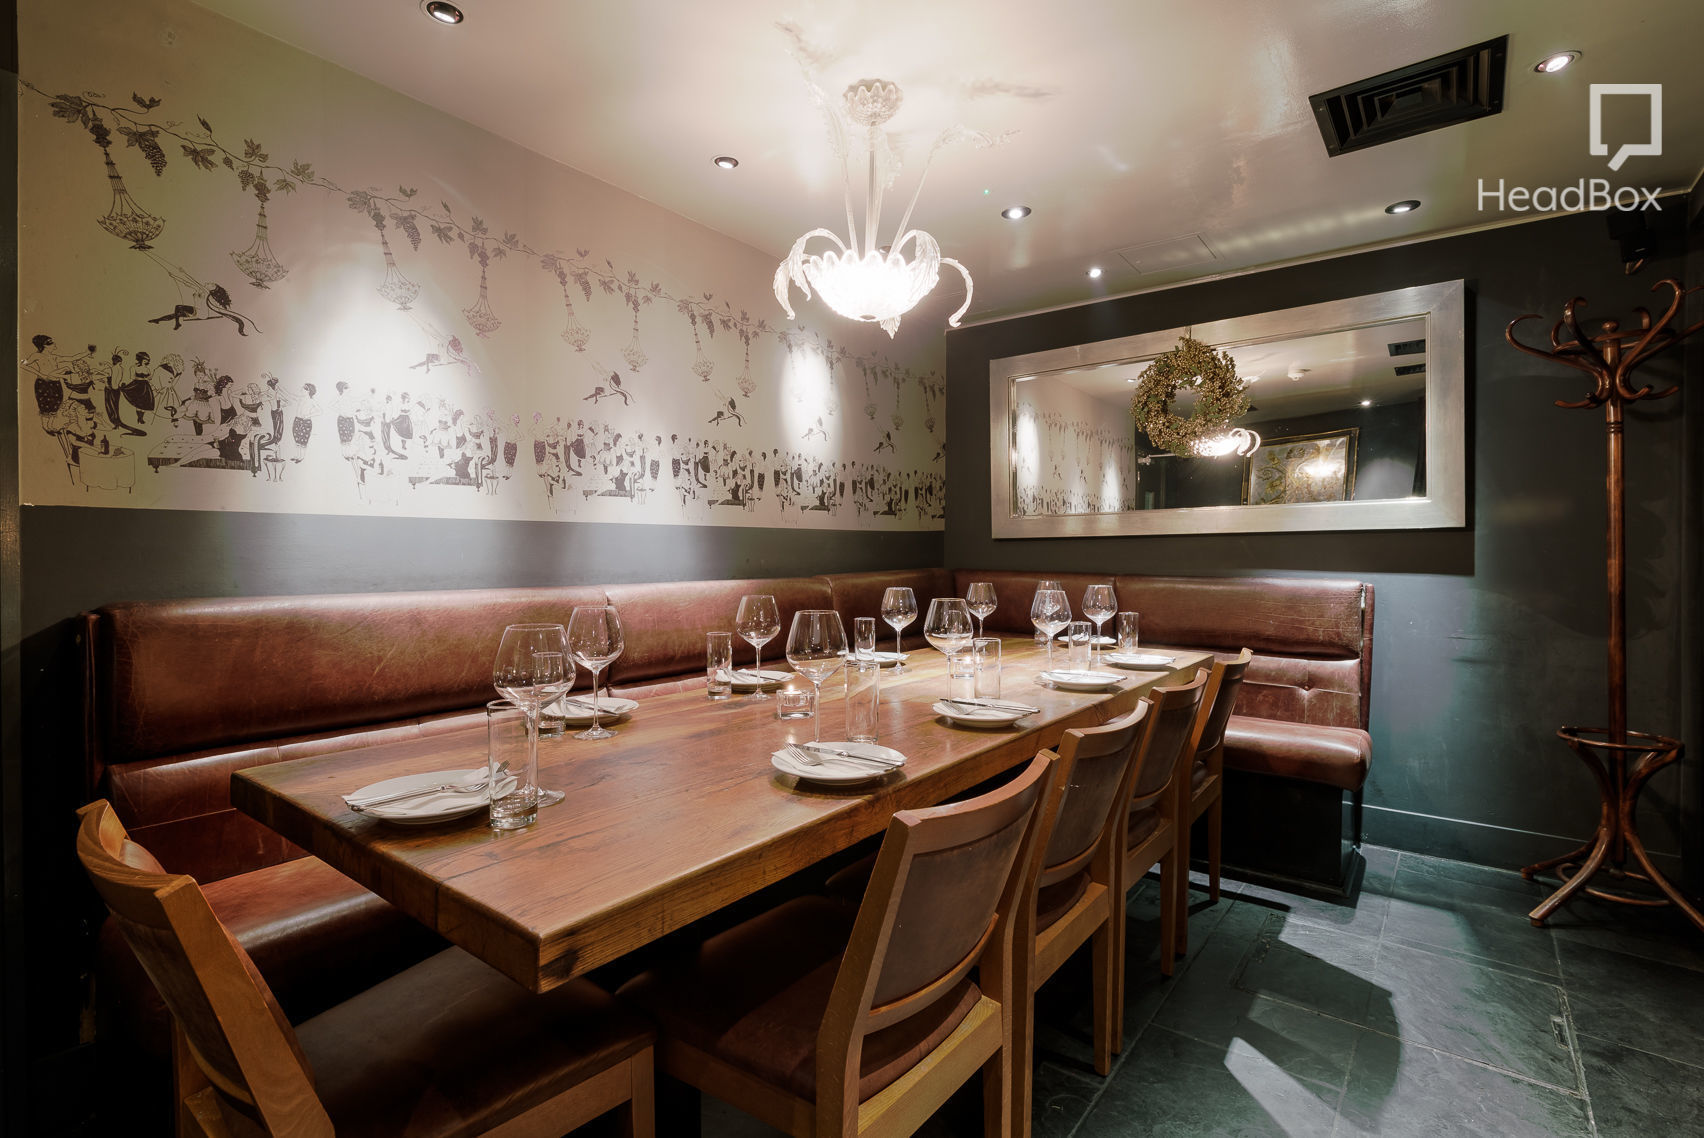 Book Evening Private Dining Room Dehesa London Headbox